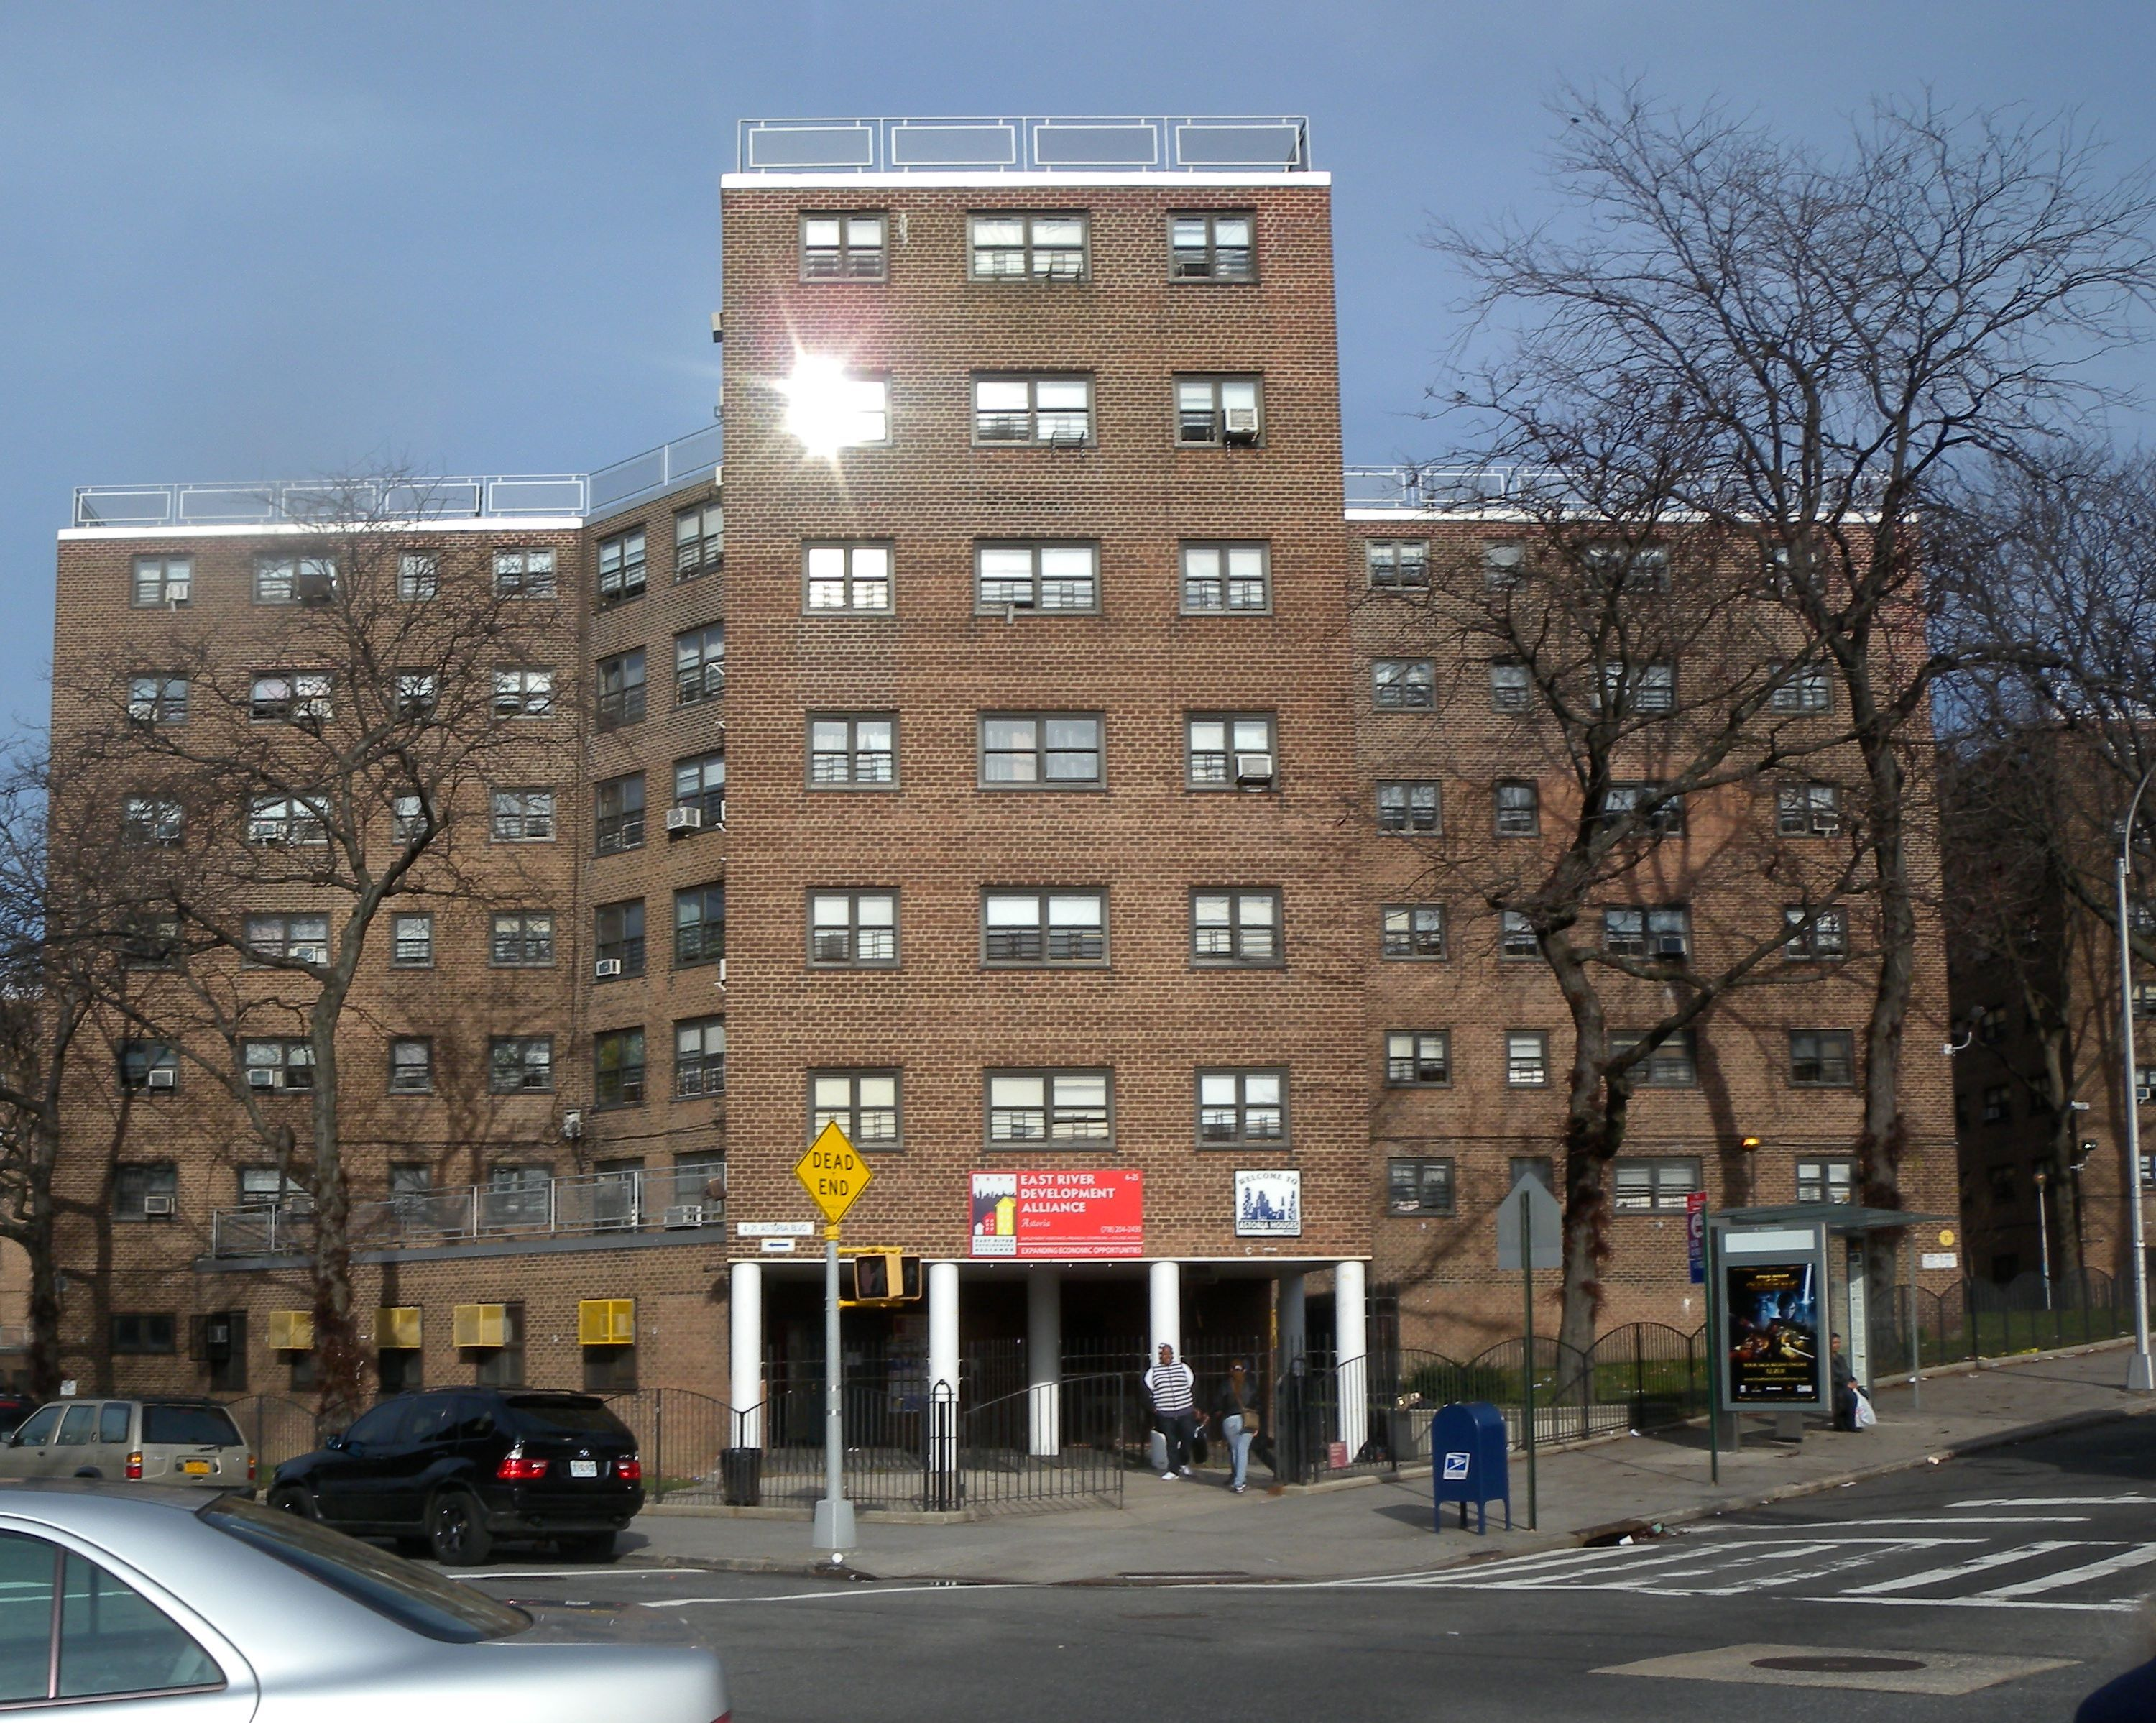 astoria housing projects | across the street from my Sister's pad ...